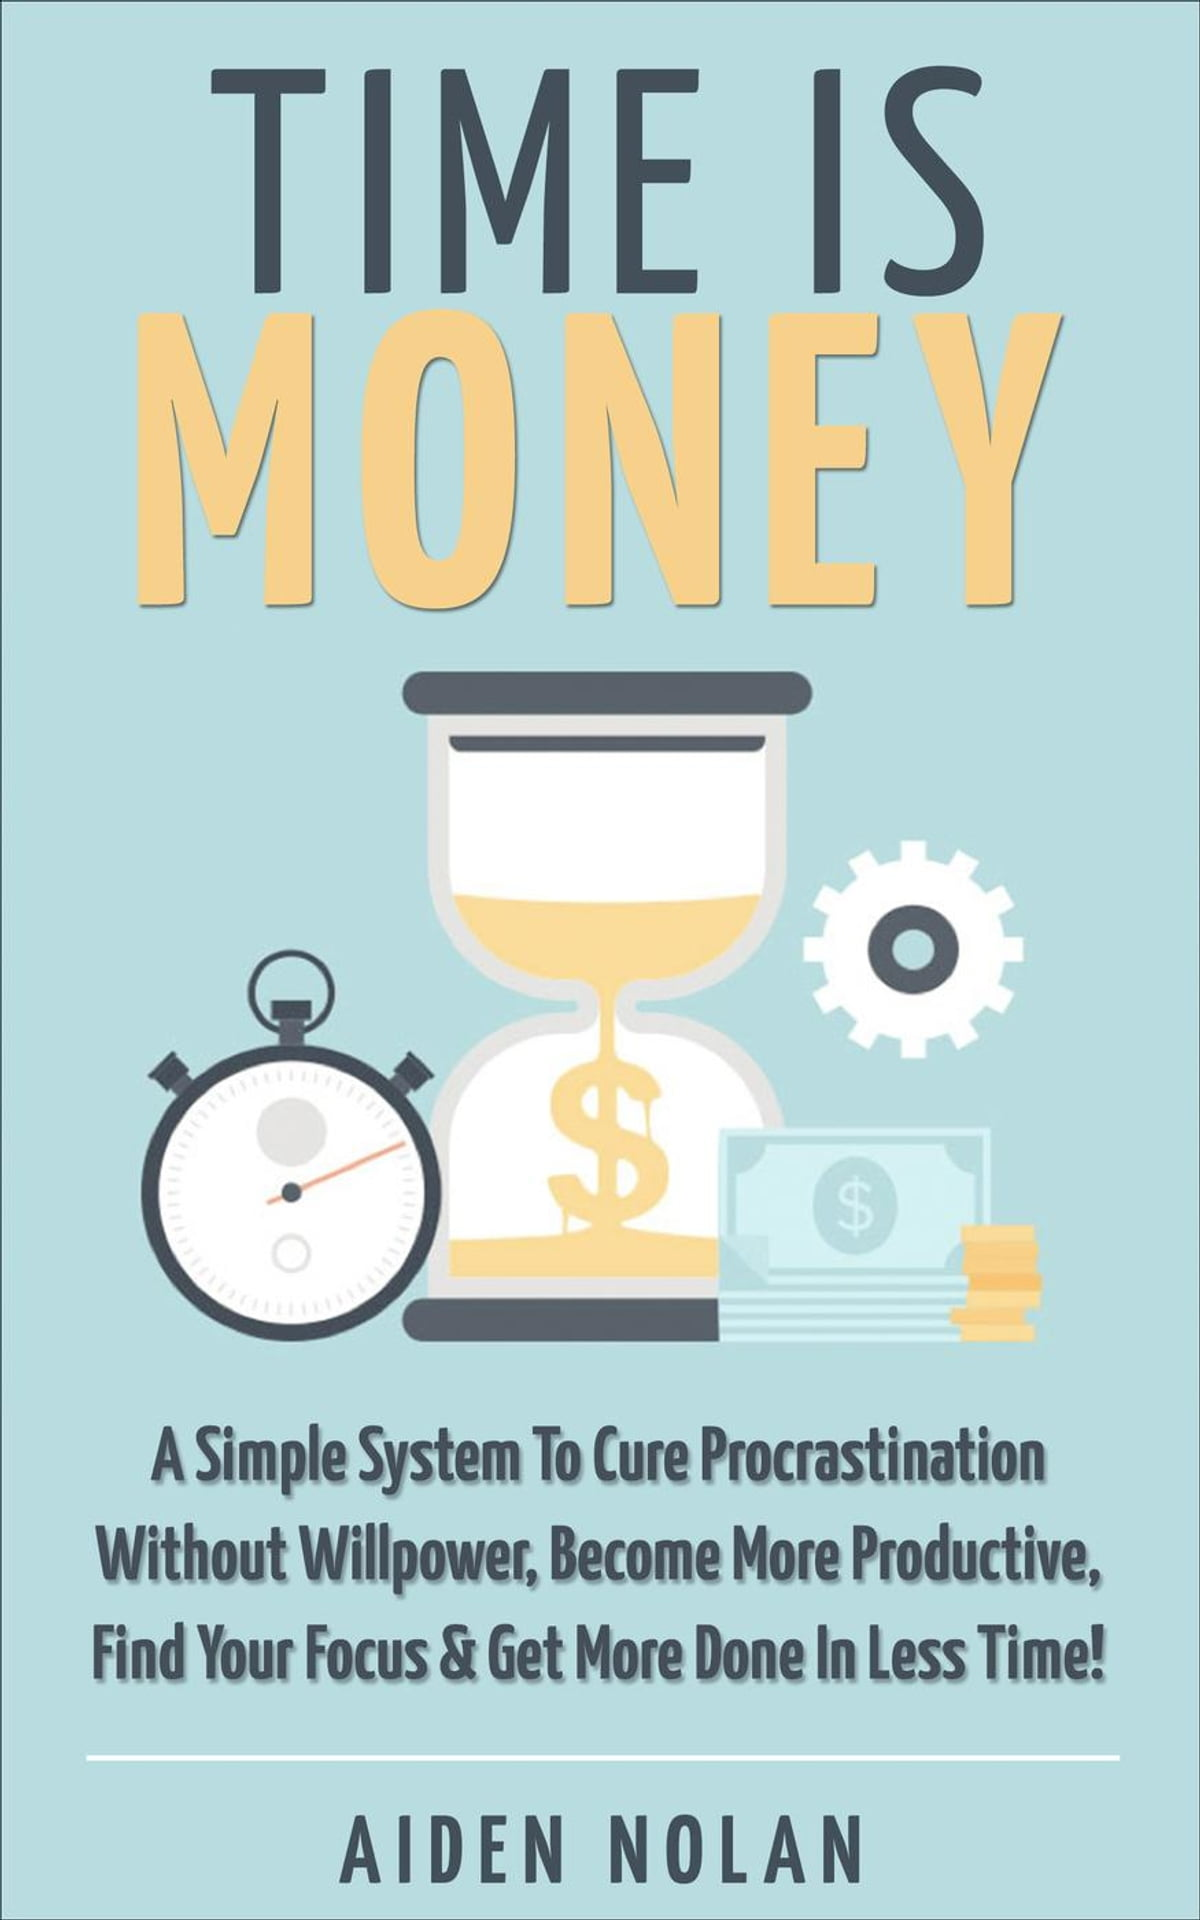 Get More Time Is Money A Simple System To Cure Procrastination Without